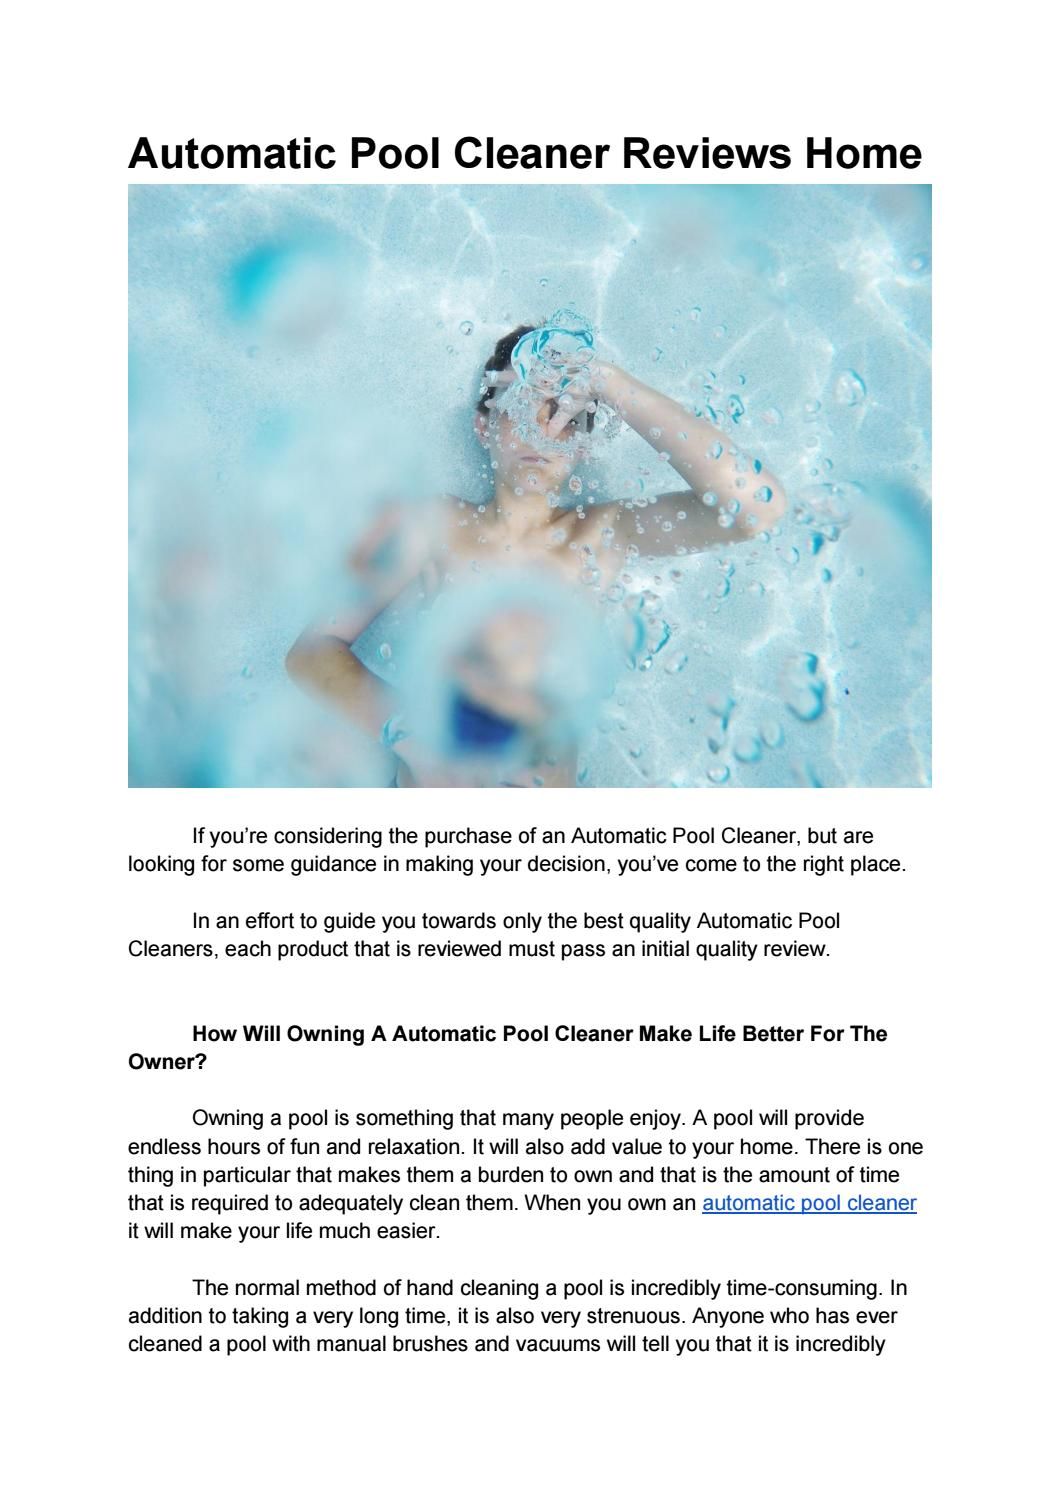 Automatic Pool Cleaner Reviews Home by Pool Cleaner - issuu